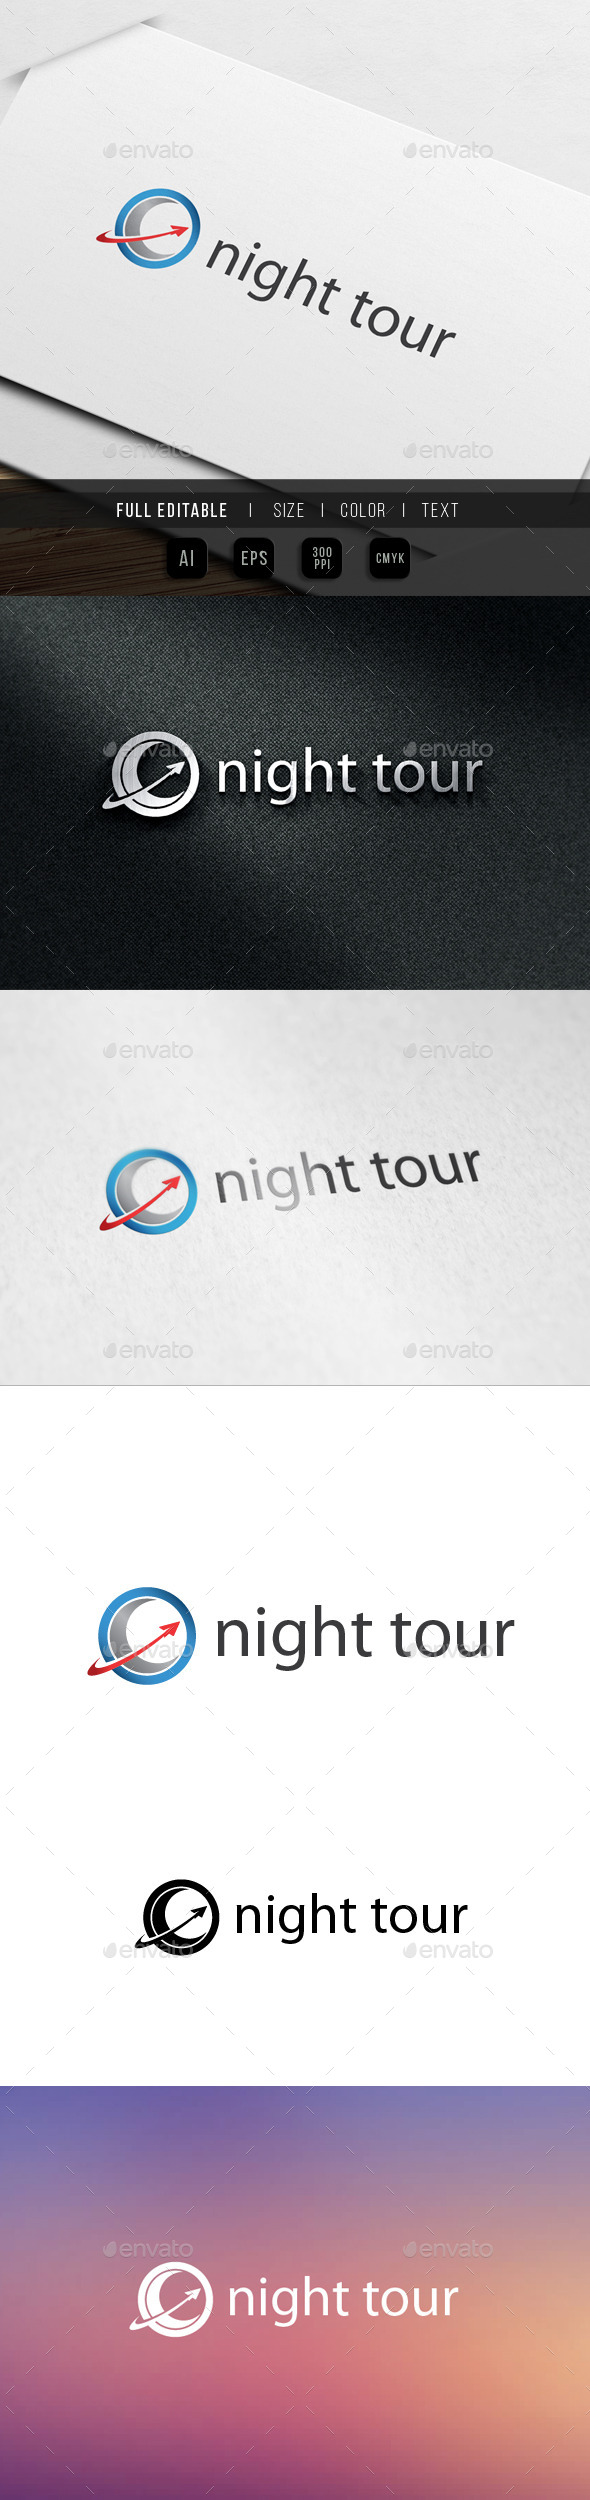 Night Tour Travel - Nature Logo Templates